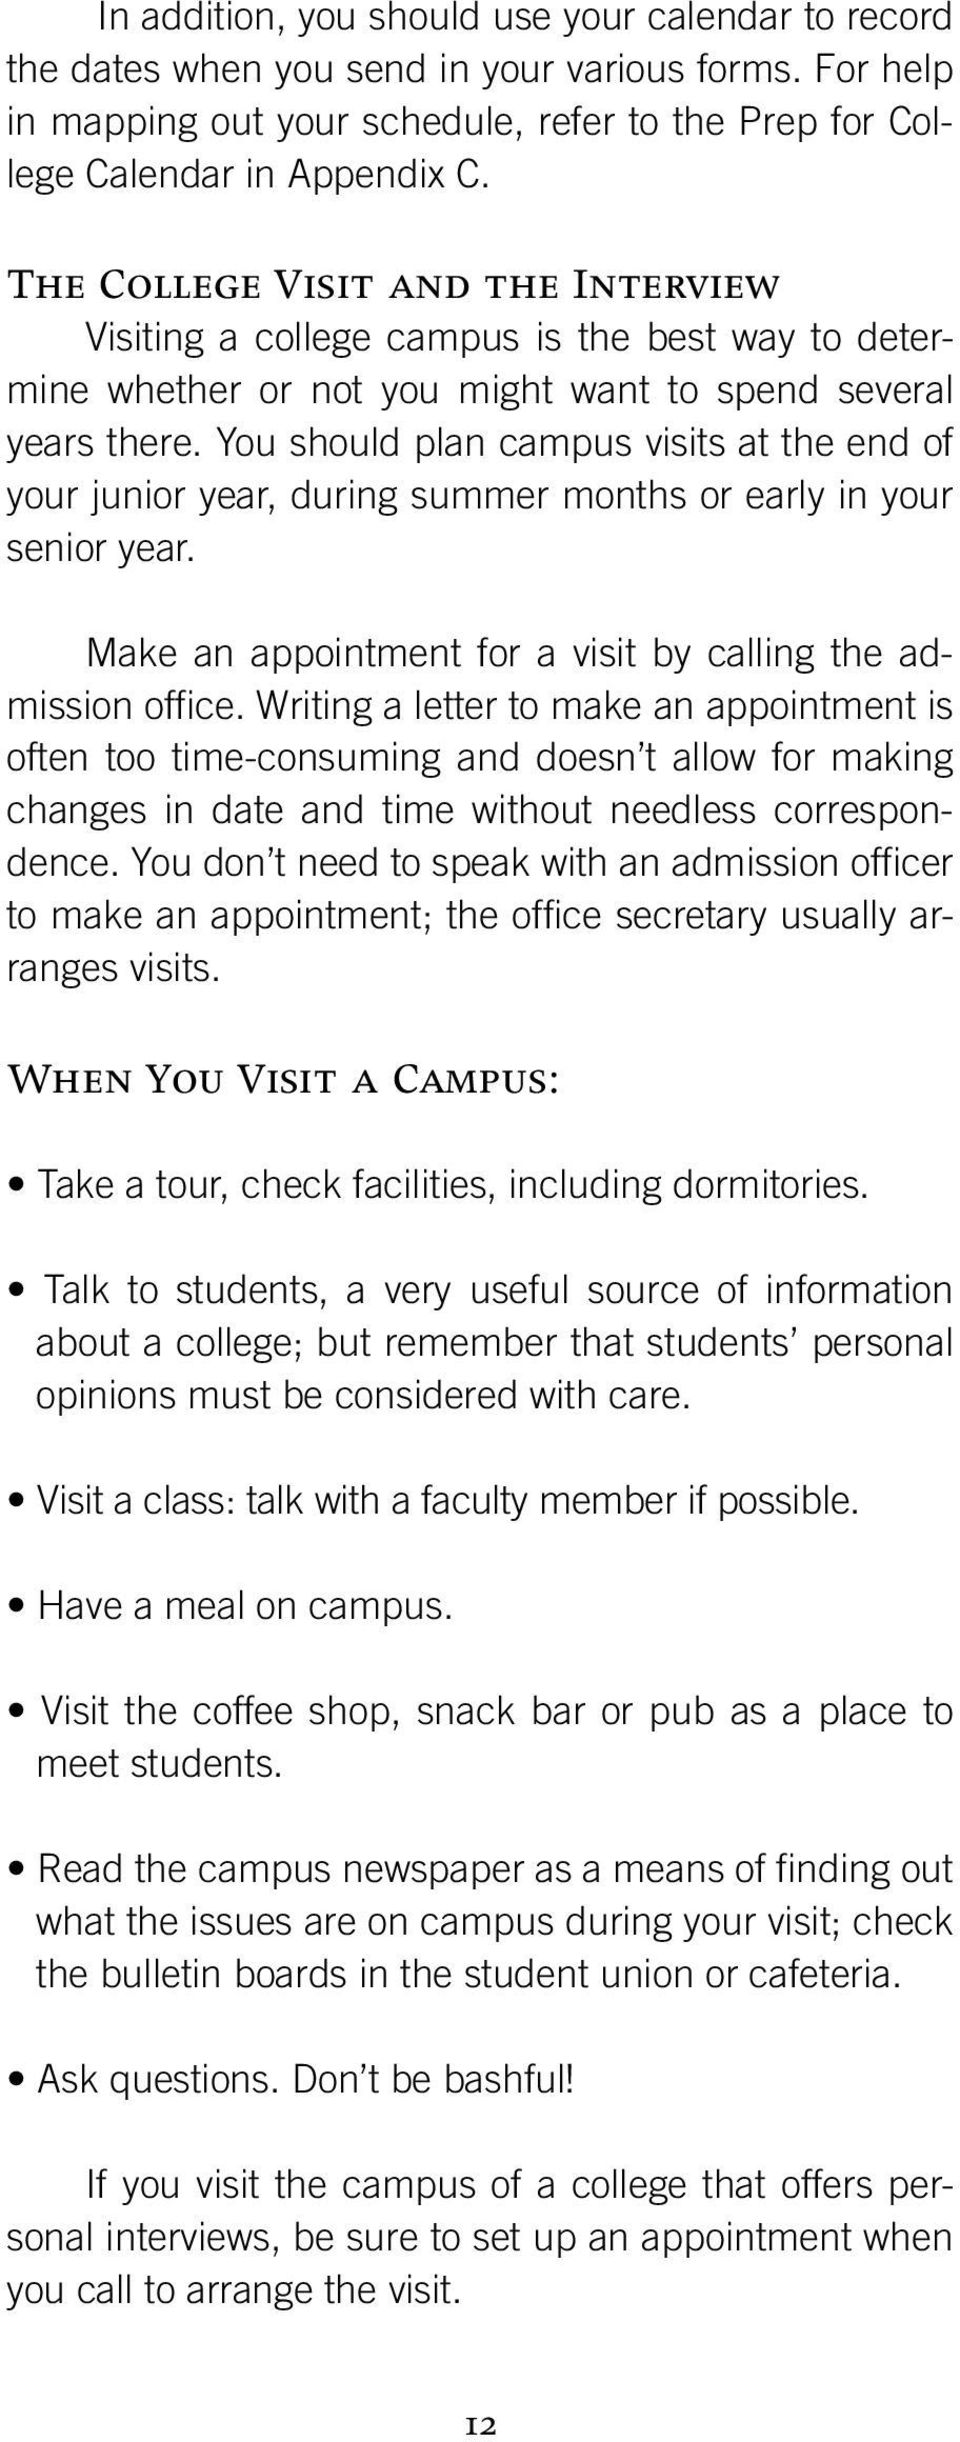 You should plan campus visits at the end of your junior year, during summer months or early in your senior year. Make an appointment for a visit by calling the admission office.